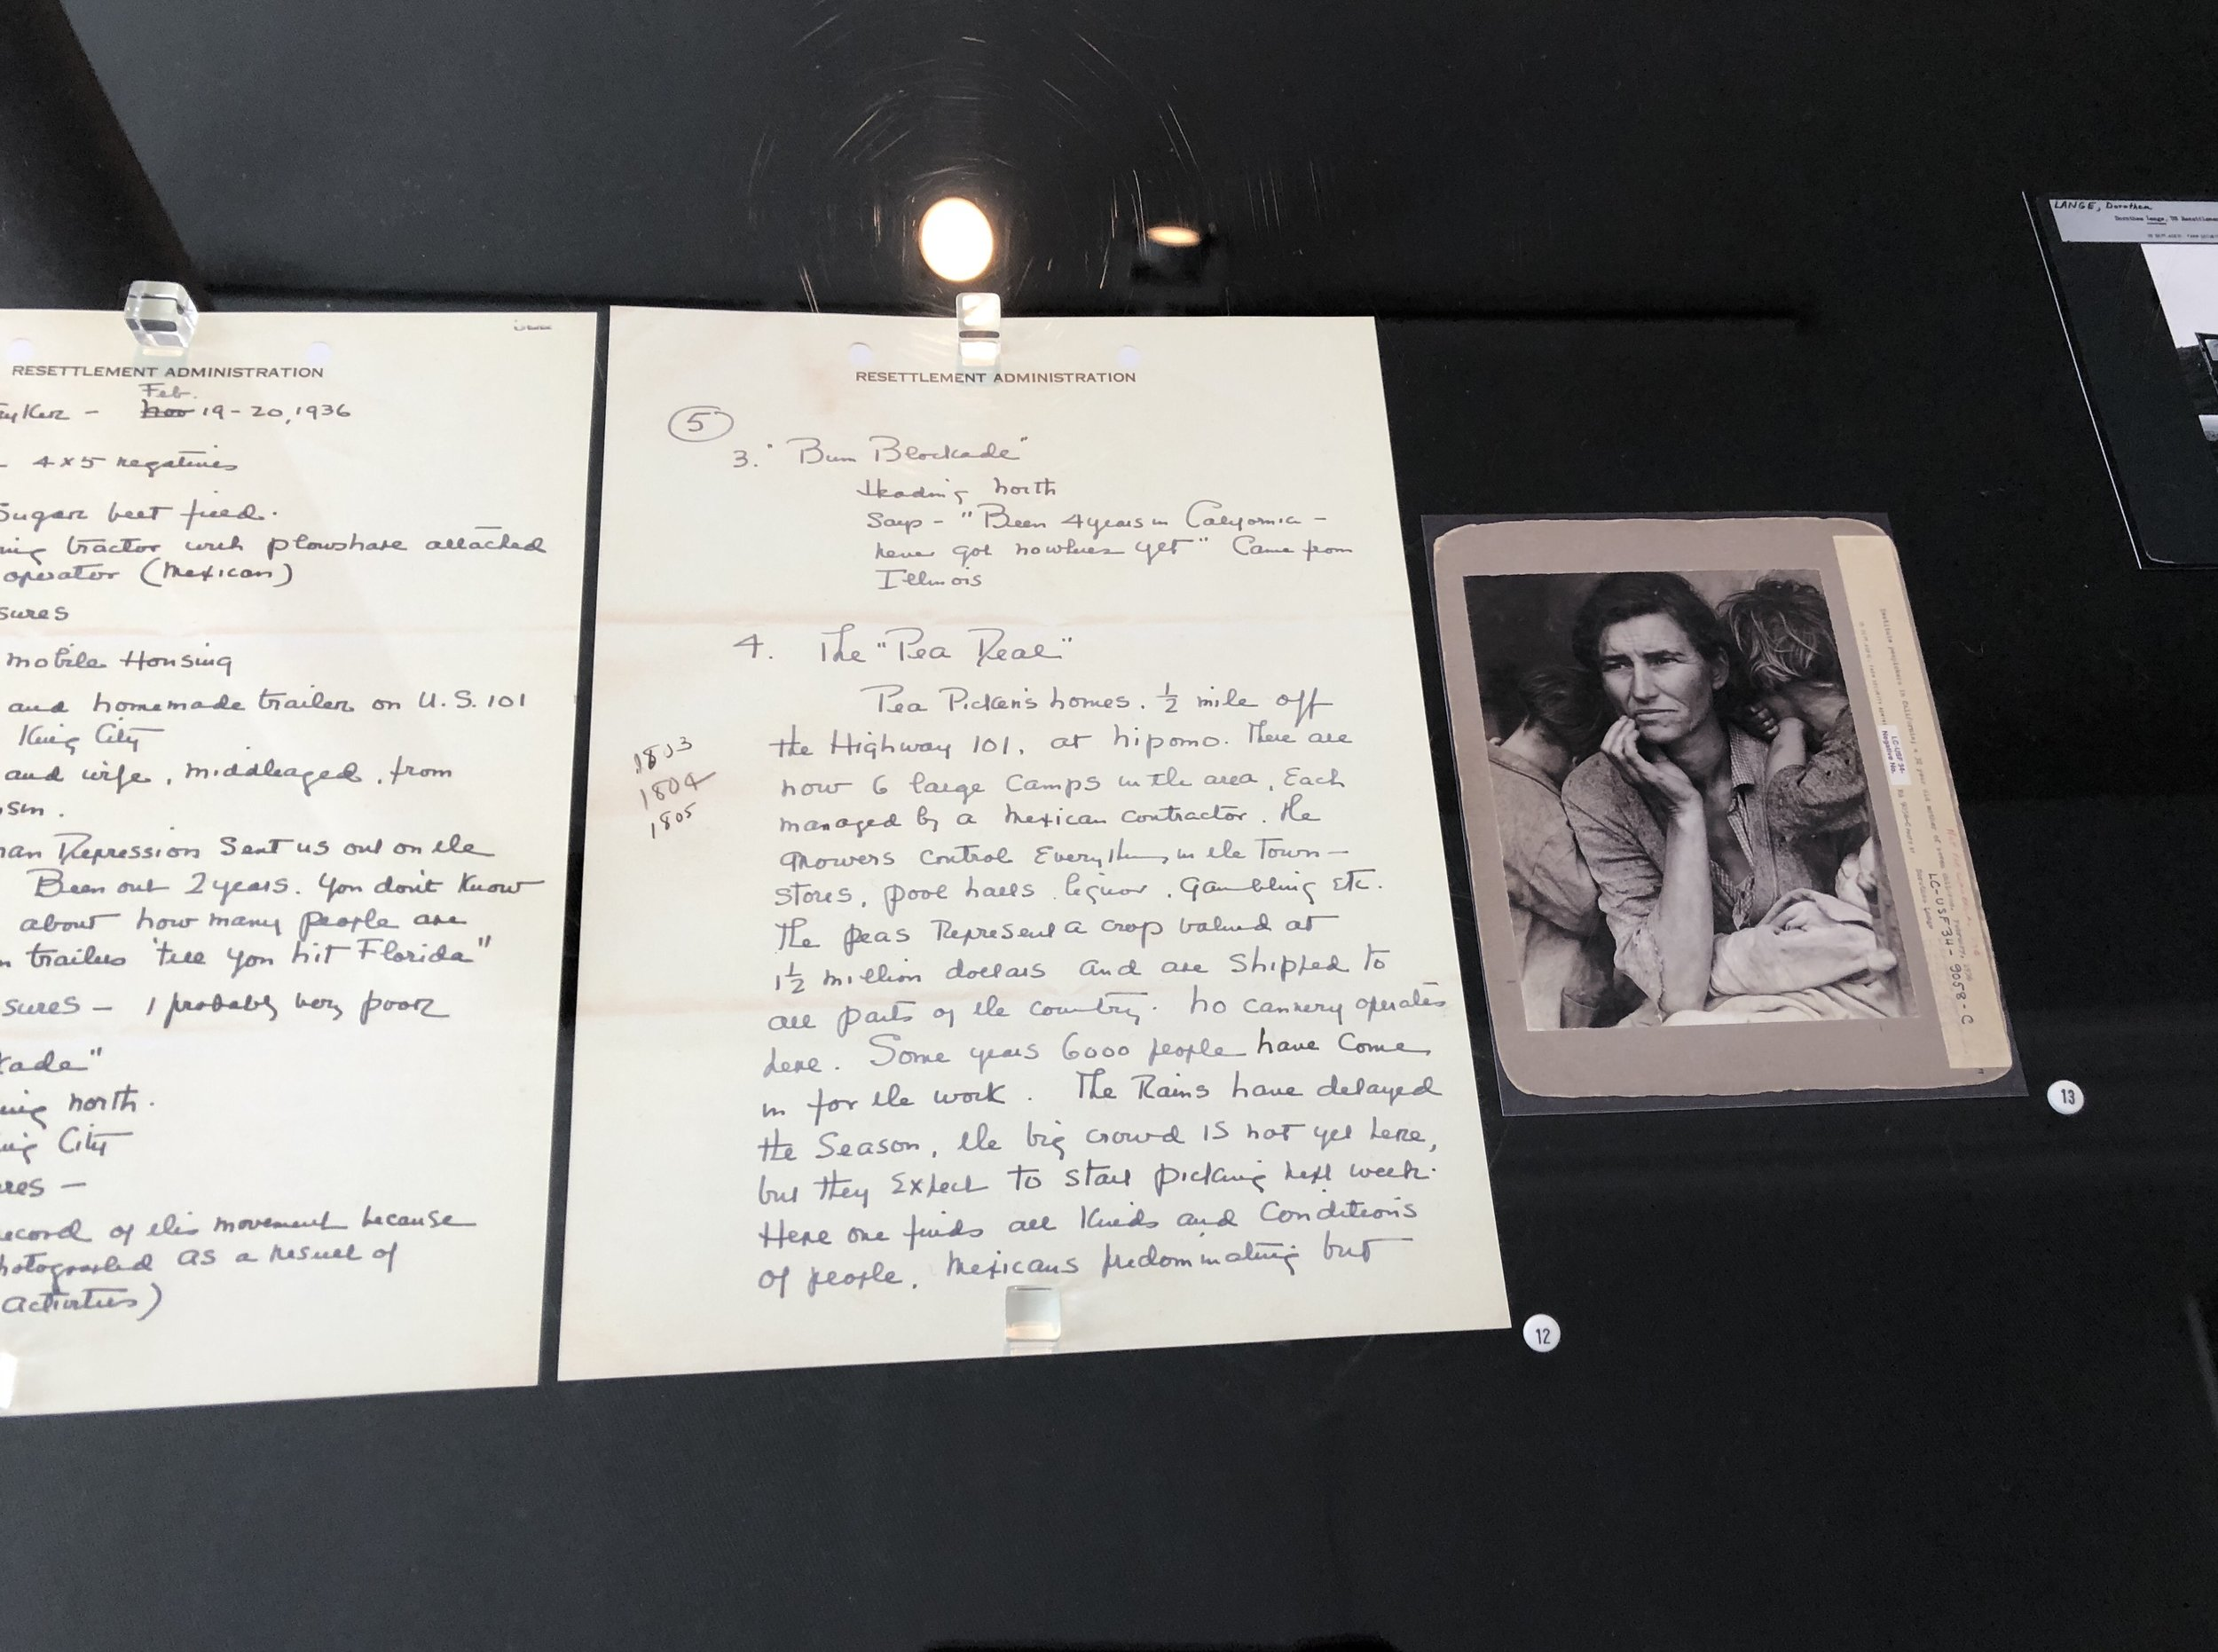 Dorothea Lange's field notes for Roy Stryker